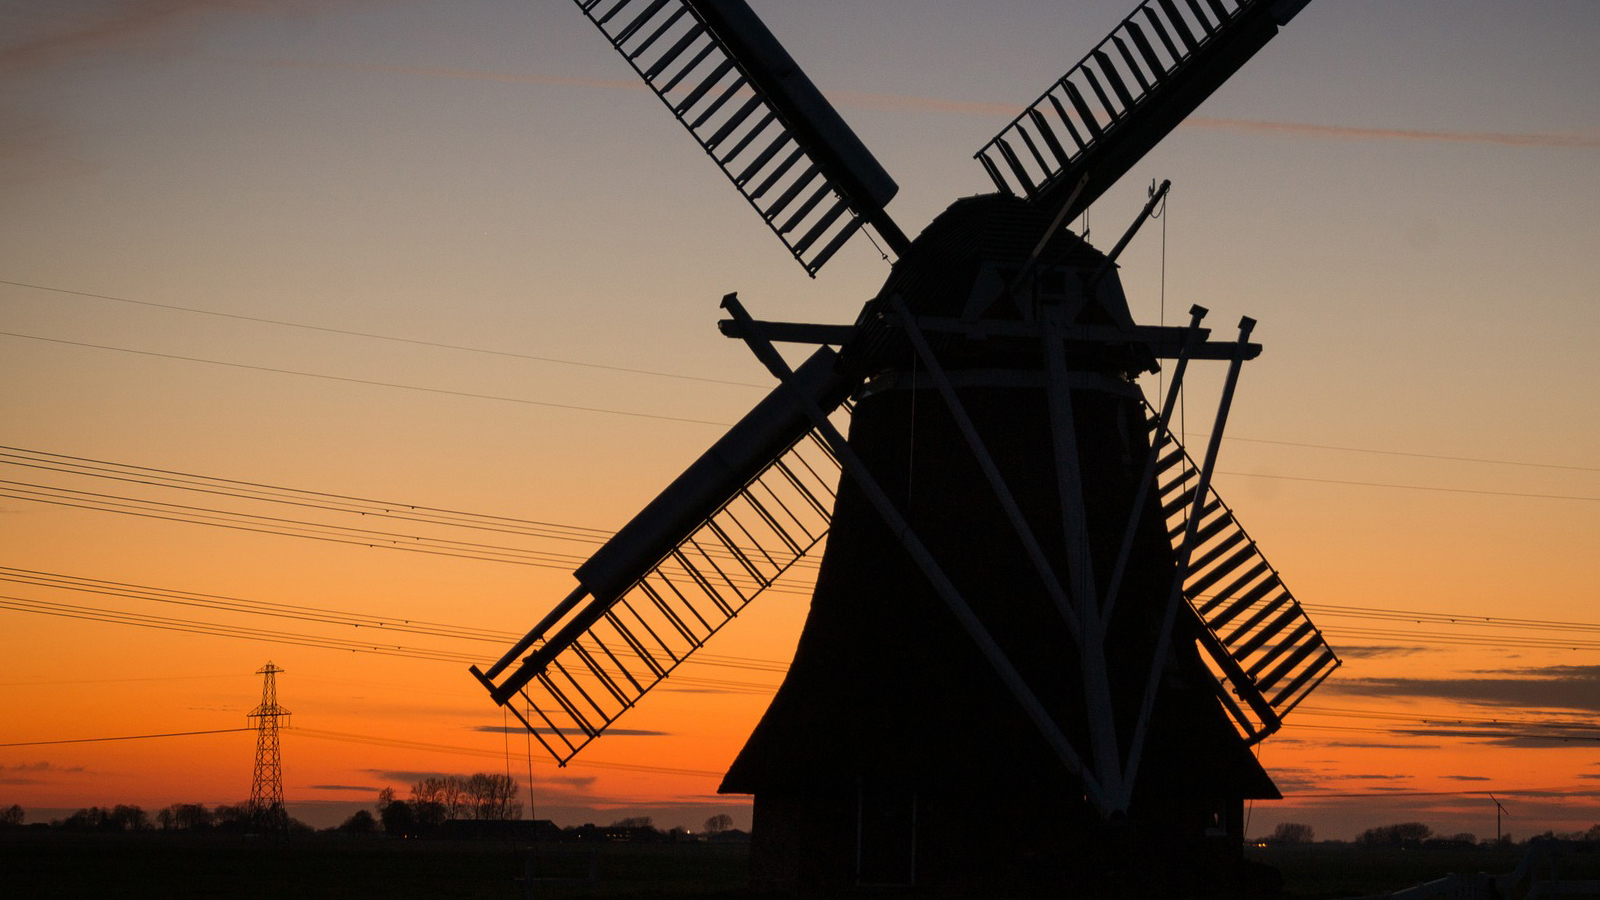 Windmolen2